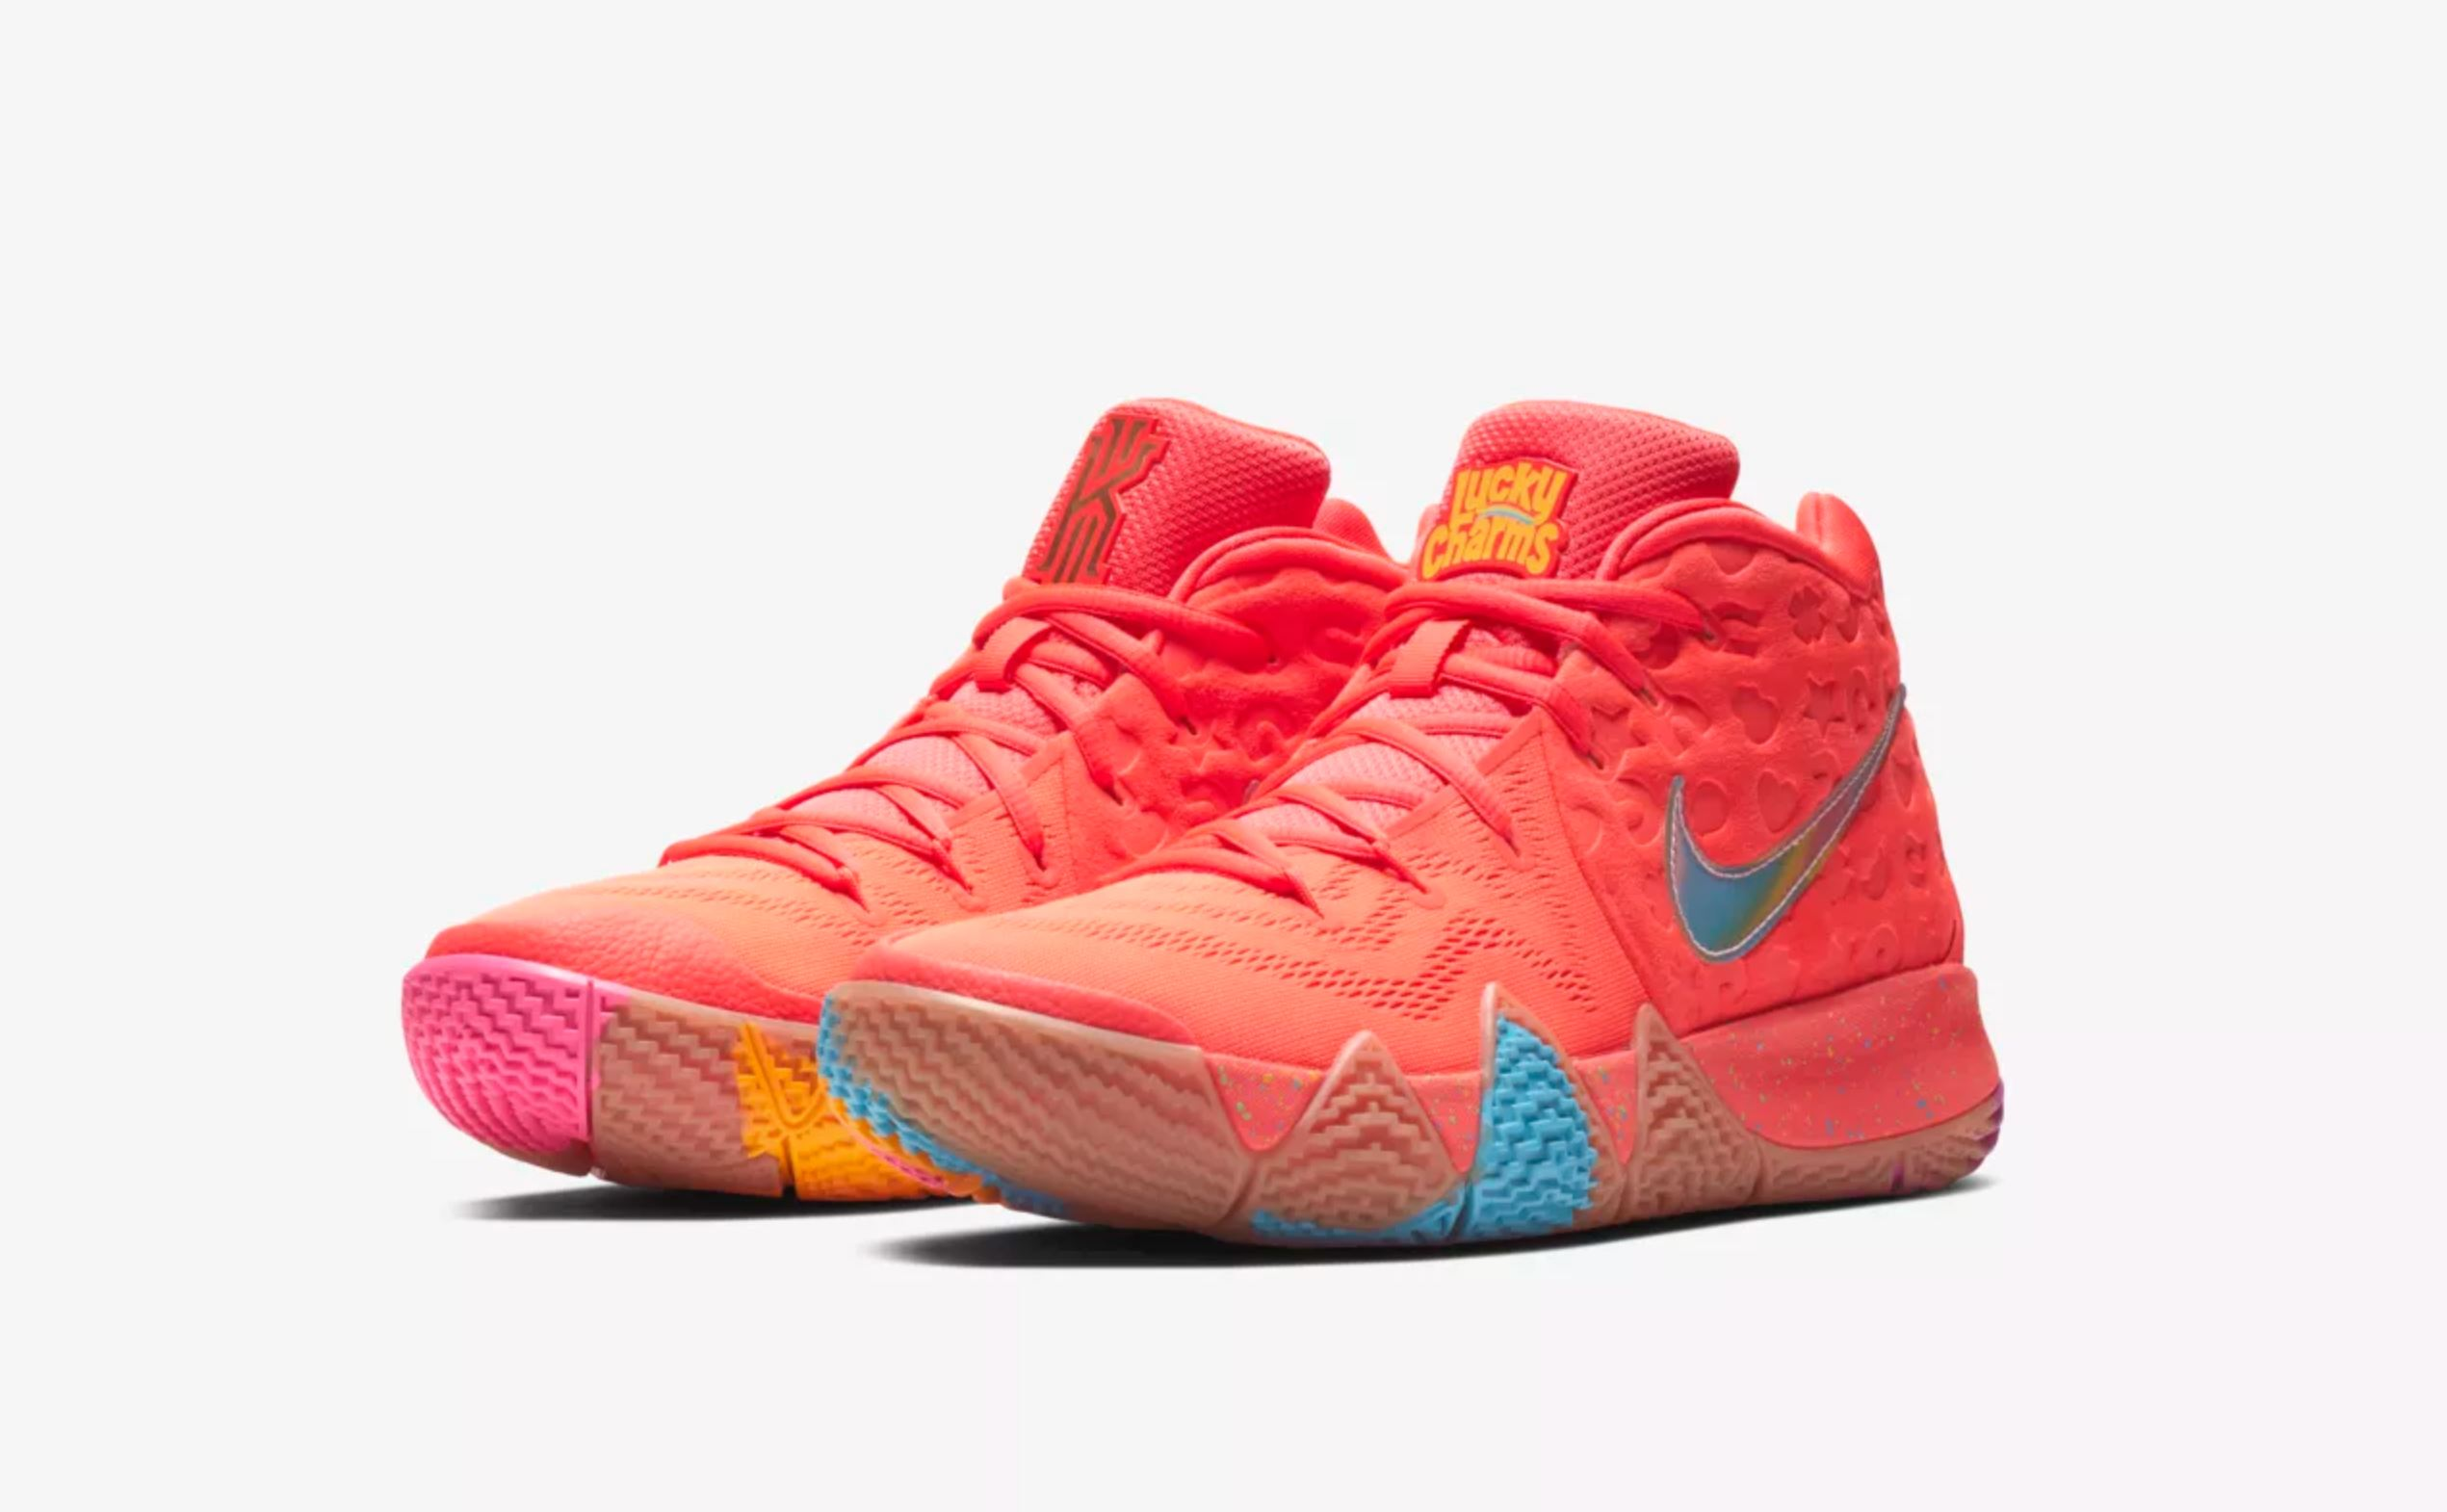 af7b579ce76 nike kyrie 4 lucky charms release date - WearTesters